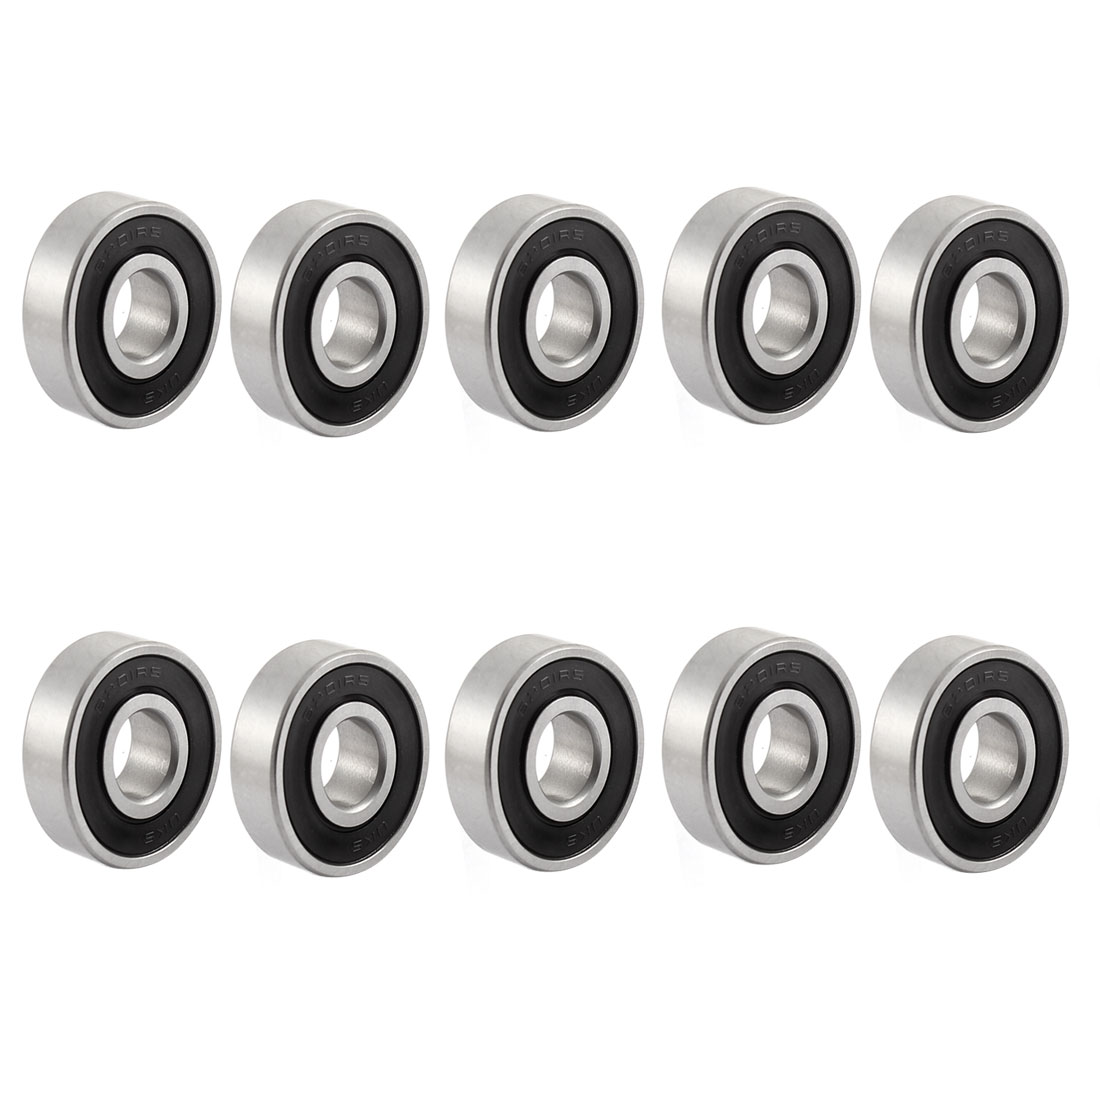 6201-2RS 12mm Inner Dia 32mm OD Shielded Ball Bearing for Electric Motor 10 Pcs